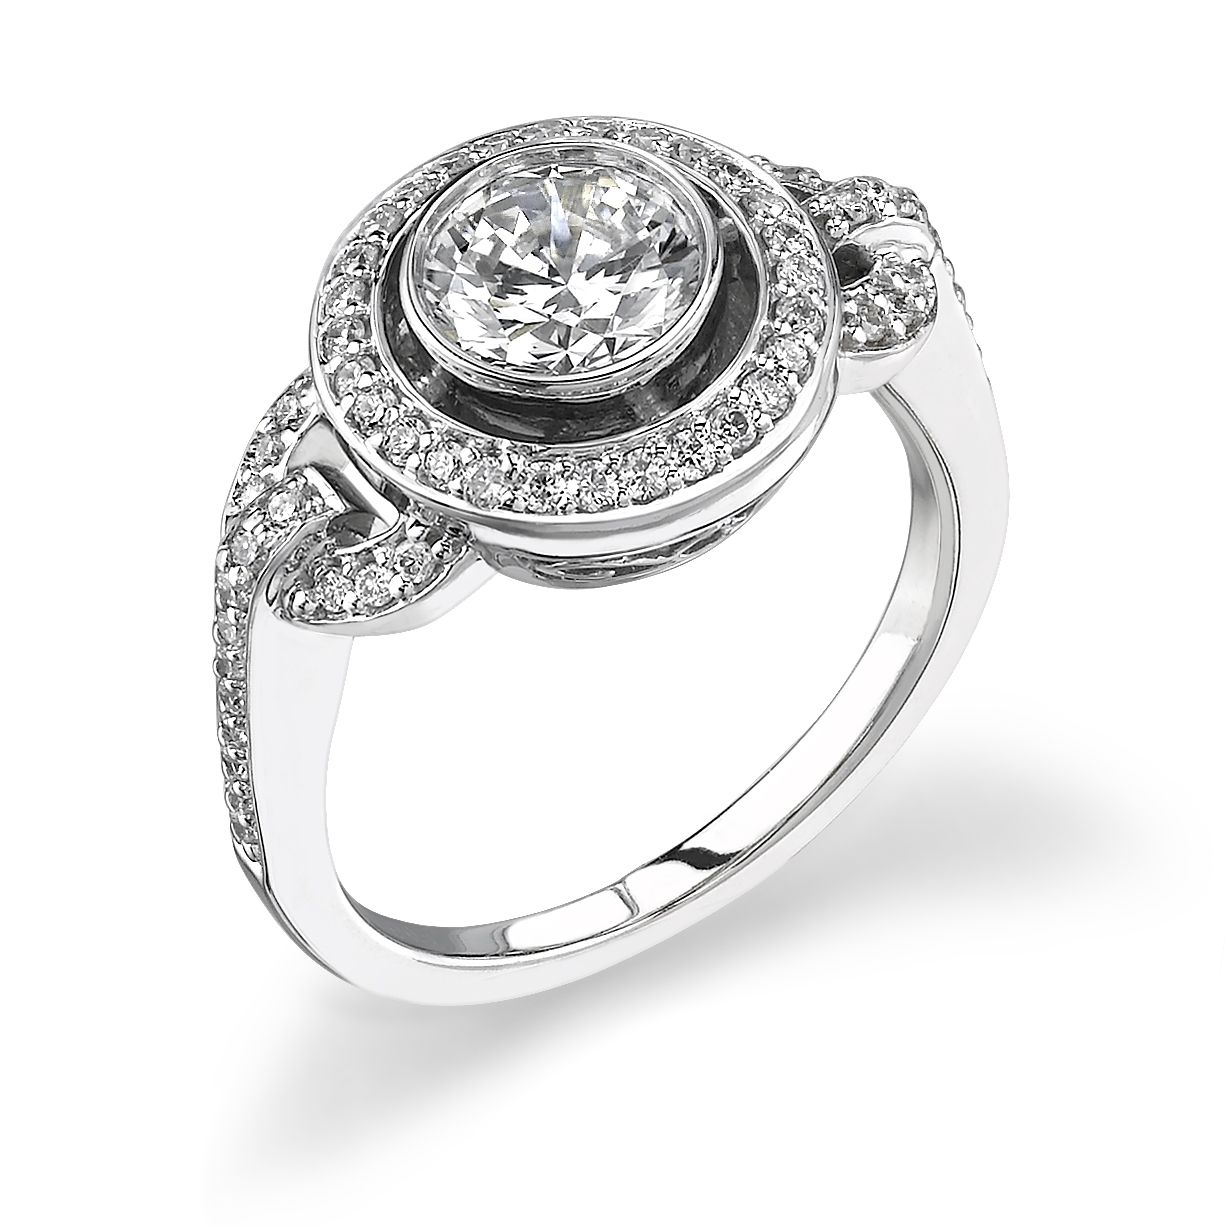 elma gil engagement ring engagement rings pinterest